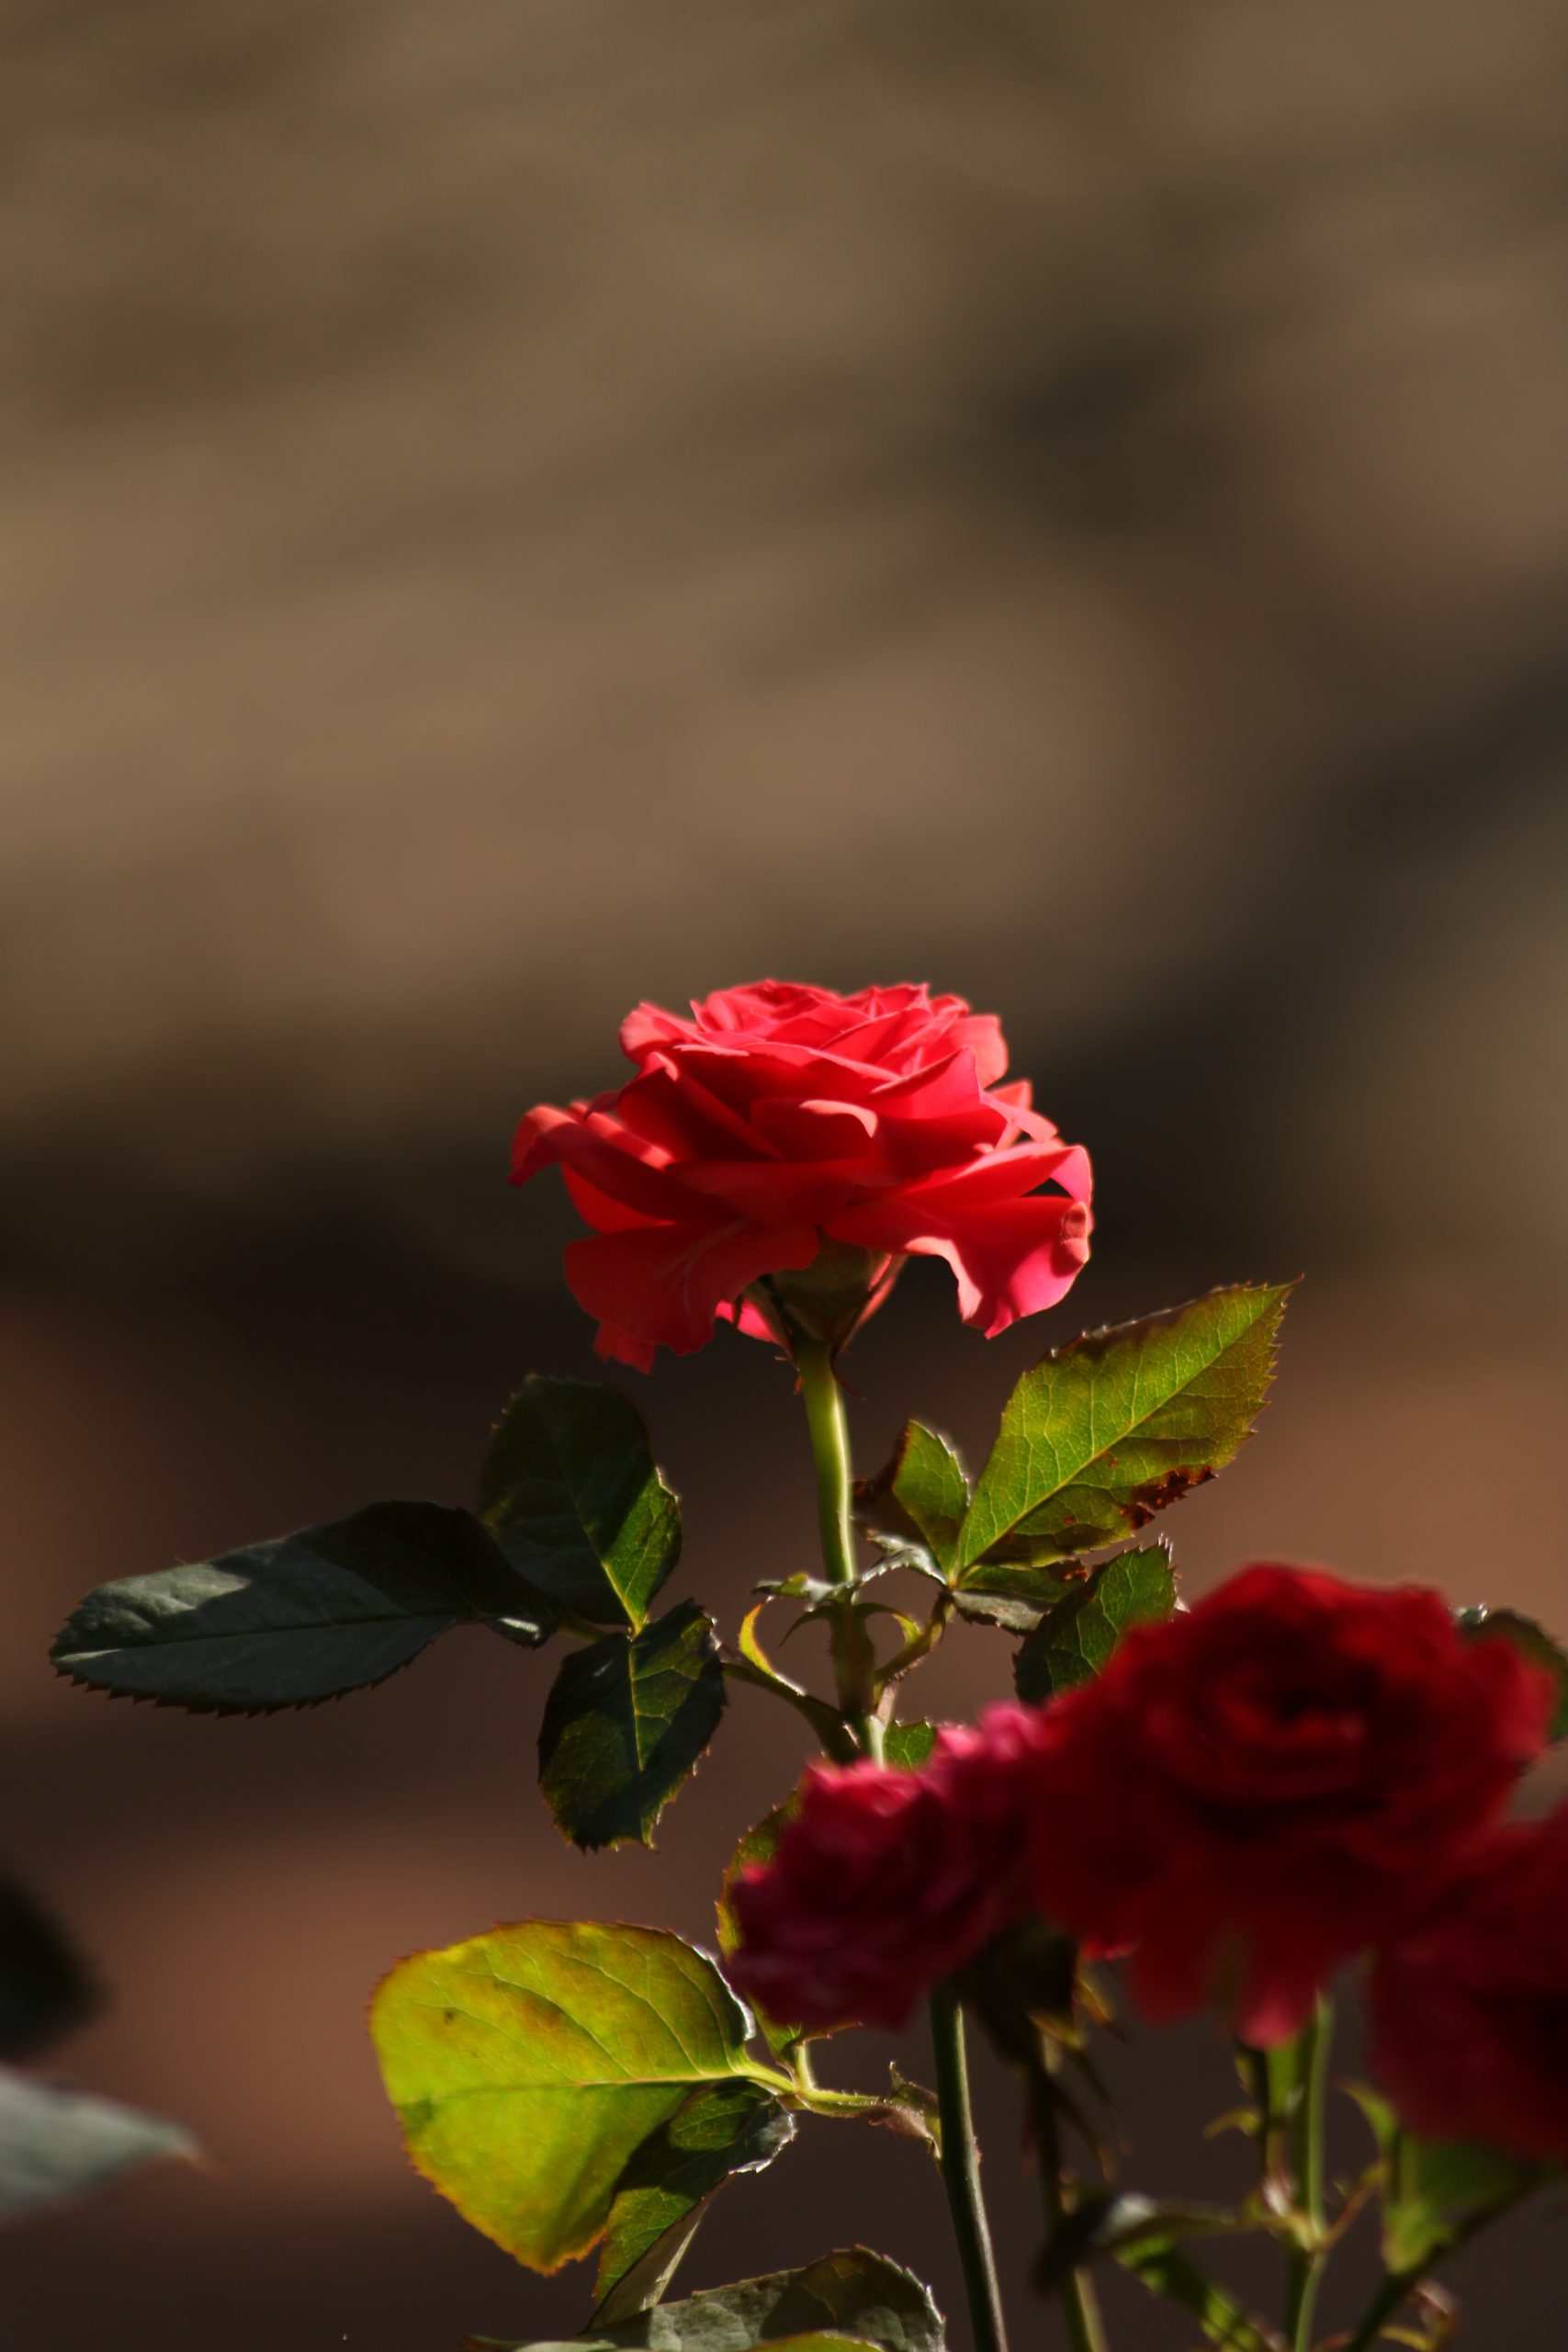 A red rose plant